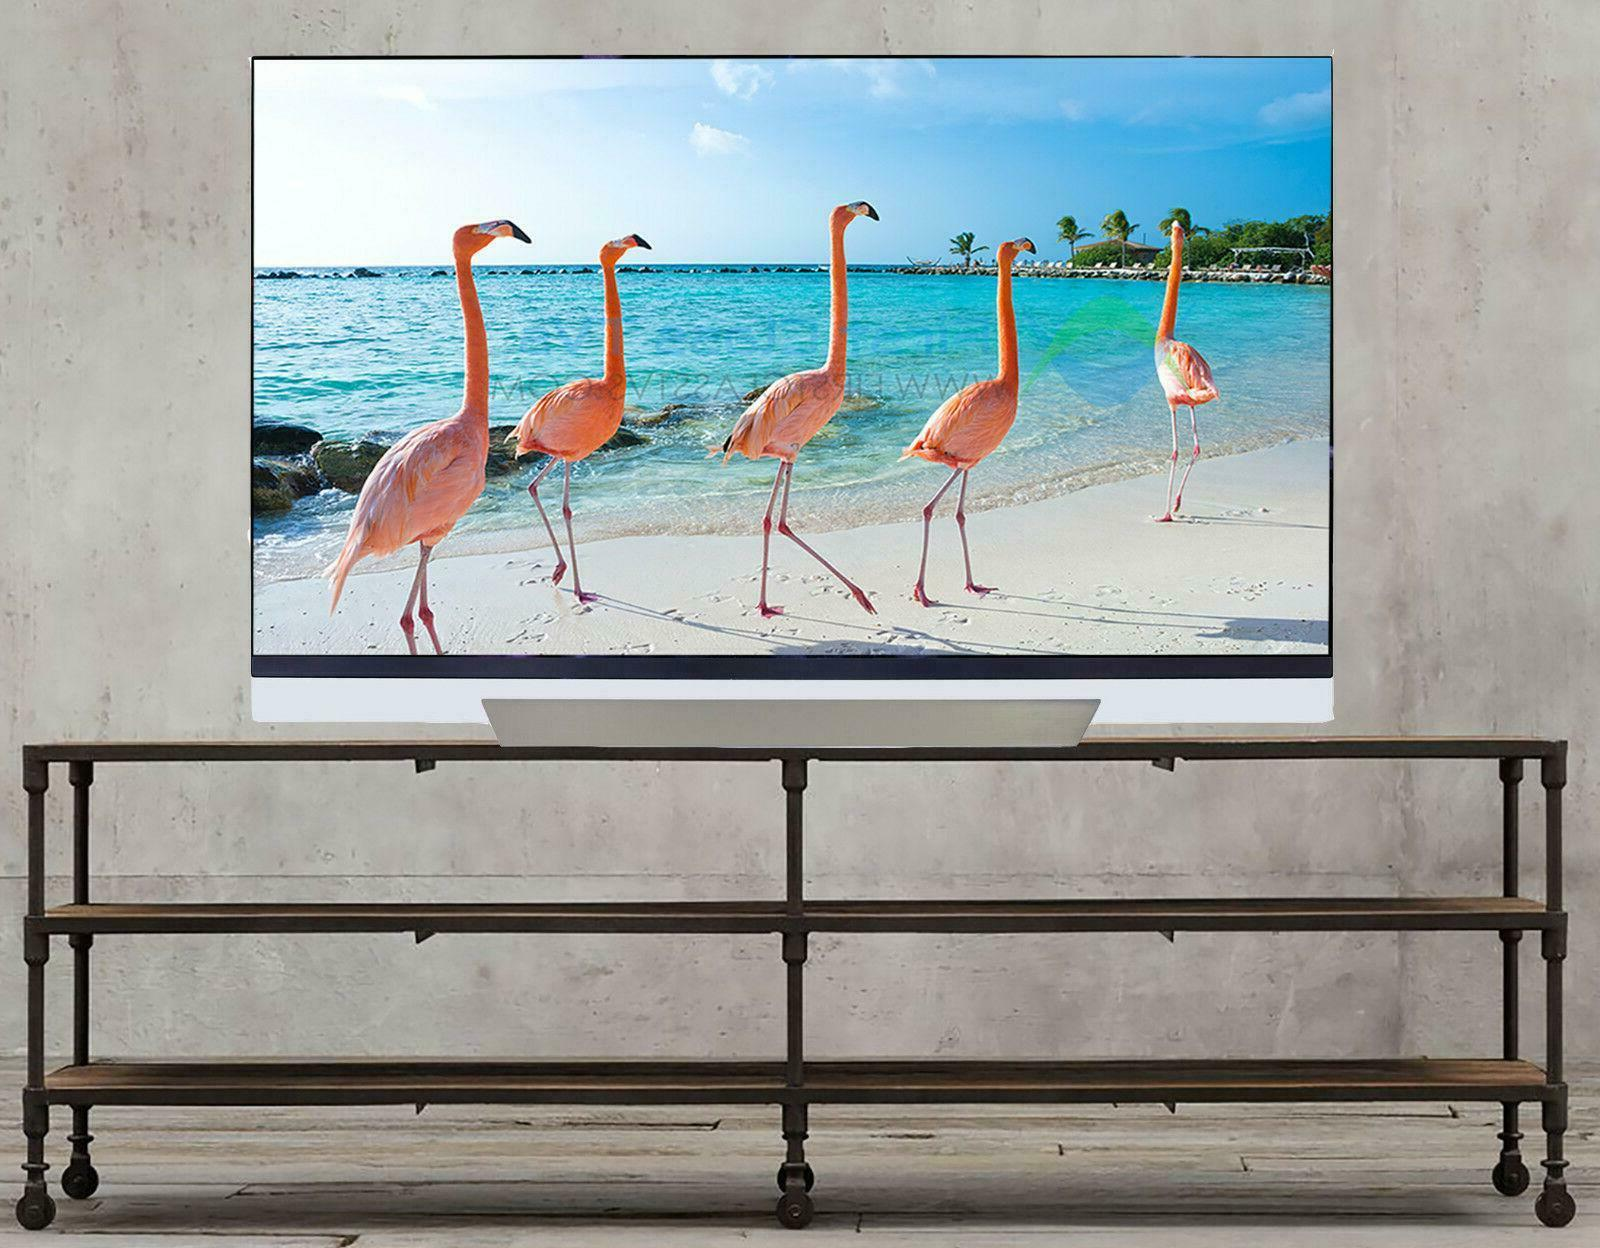 LG Electronics OLED55E8P 55-Inch 4K Ultra HD Smart OLED TV  - OPEN BOX . Available Now for 999.00